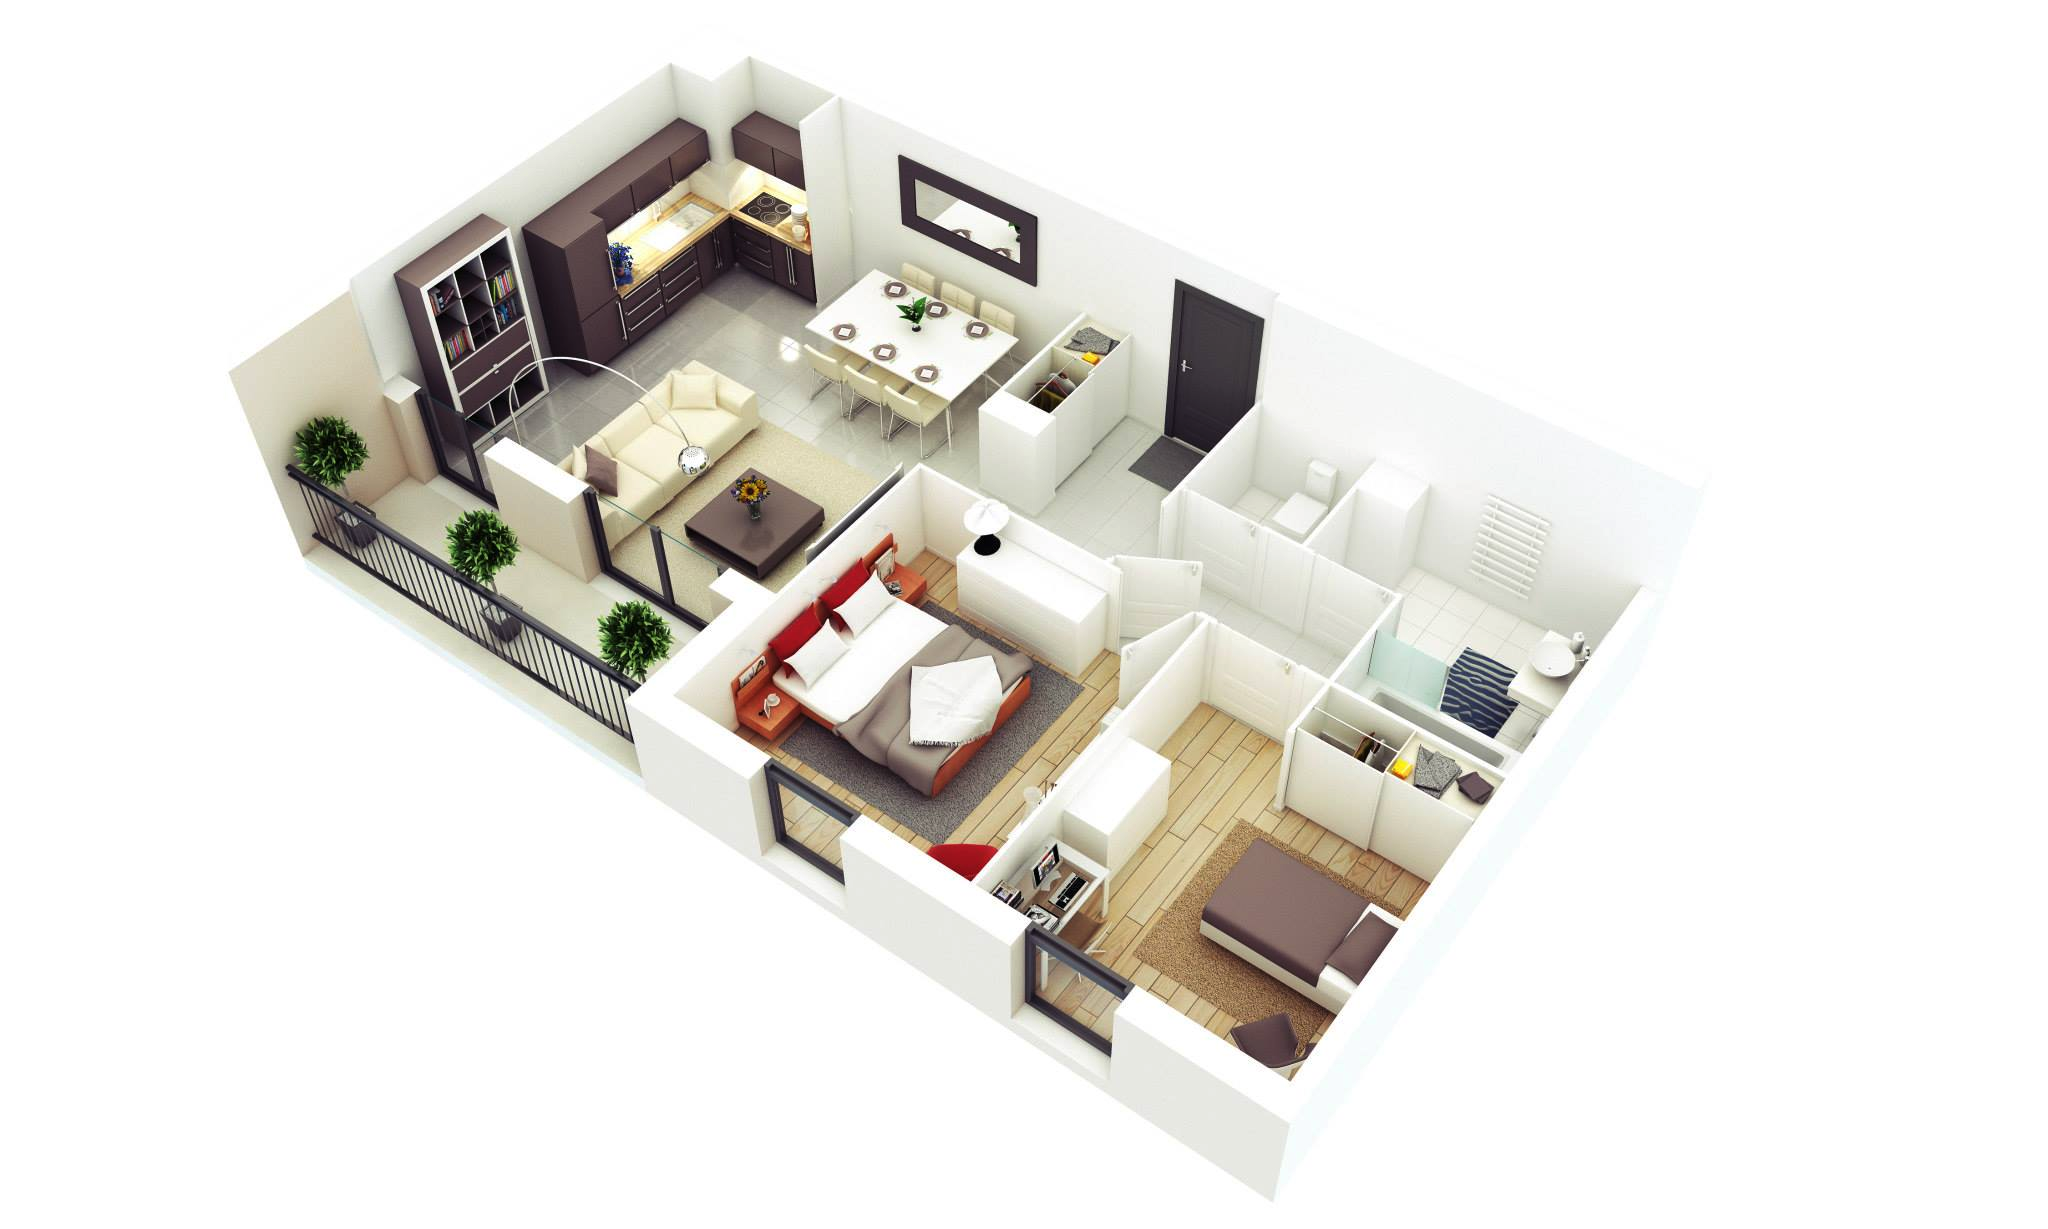 25 More 2 Bedroom 3d Floor Plans Small House Design Small Apartment Plans Small House Design Plans